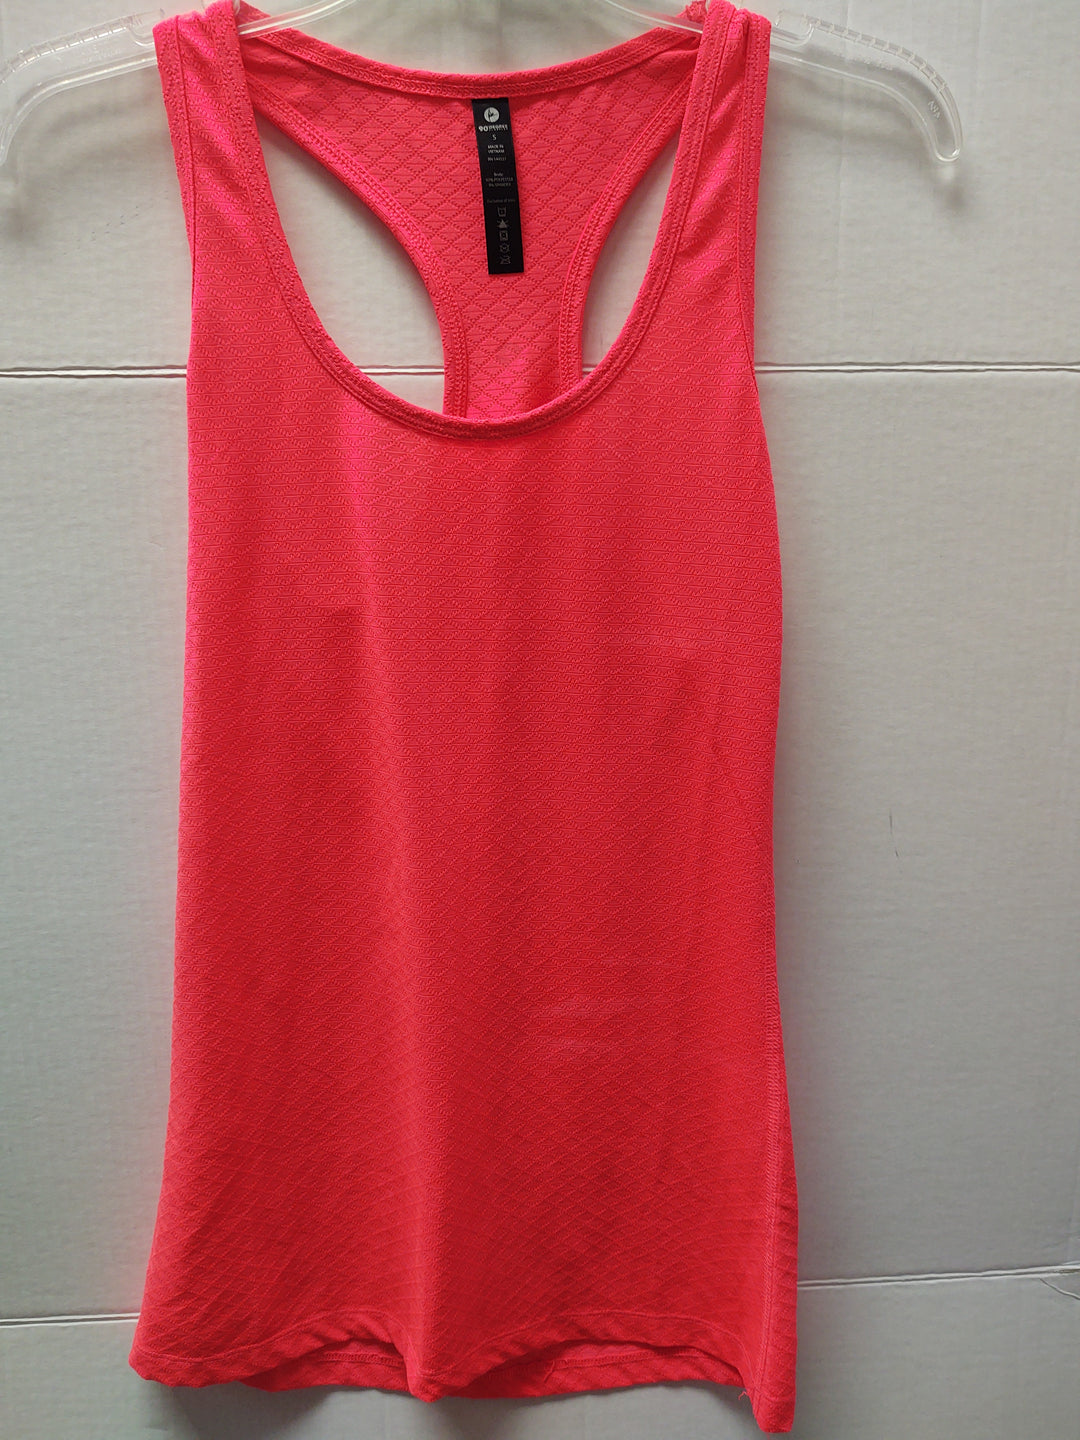 Primary Photo - BRAND: 90 DEGREES BY REFLEX <BR>STYLE: ATHLETIC TANK TOP <BR>COLOR: PINK <BR>SIZE: S <BR>SKU: 133-13355-33799